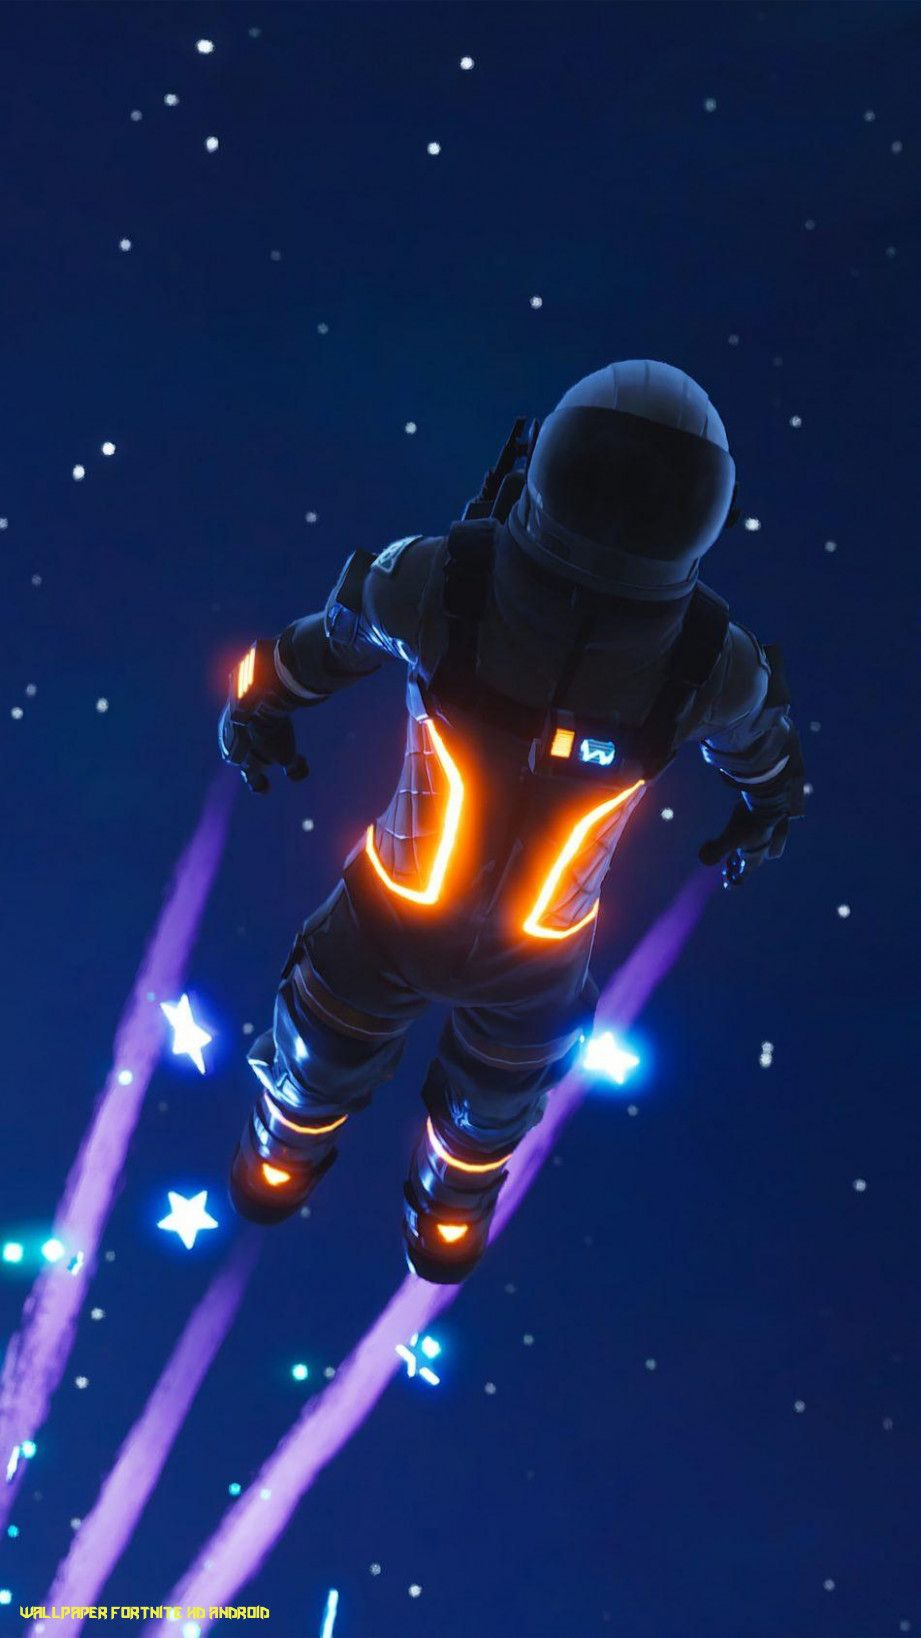 Ten Secrets About Wallpaper Fortnite Hd Android That Has Never Been Revealed For The Past 22 Years Wallpaper Fortnit In 2020 Mobile Wallpaper Fortnite Dark Wallpaper